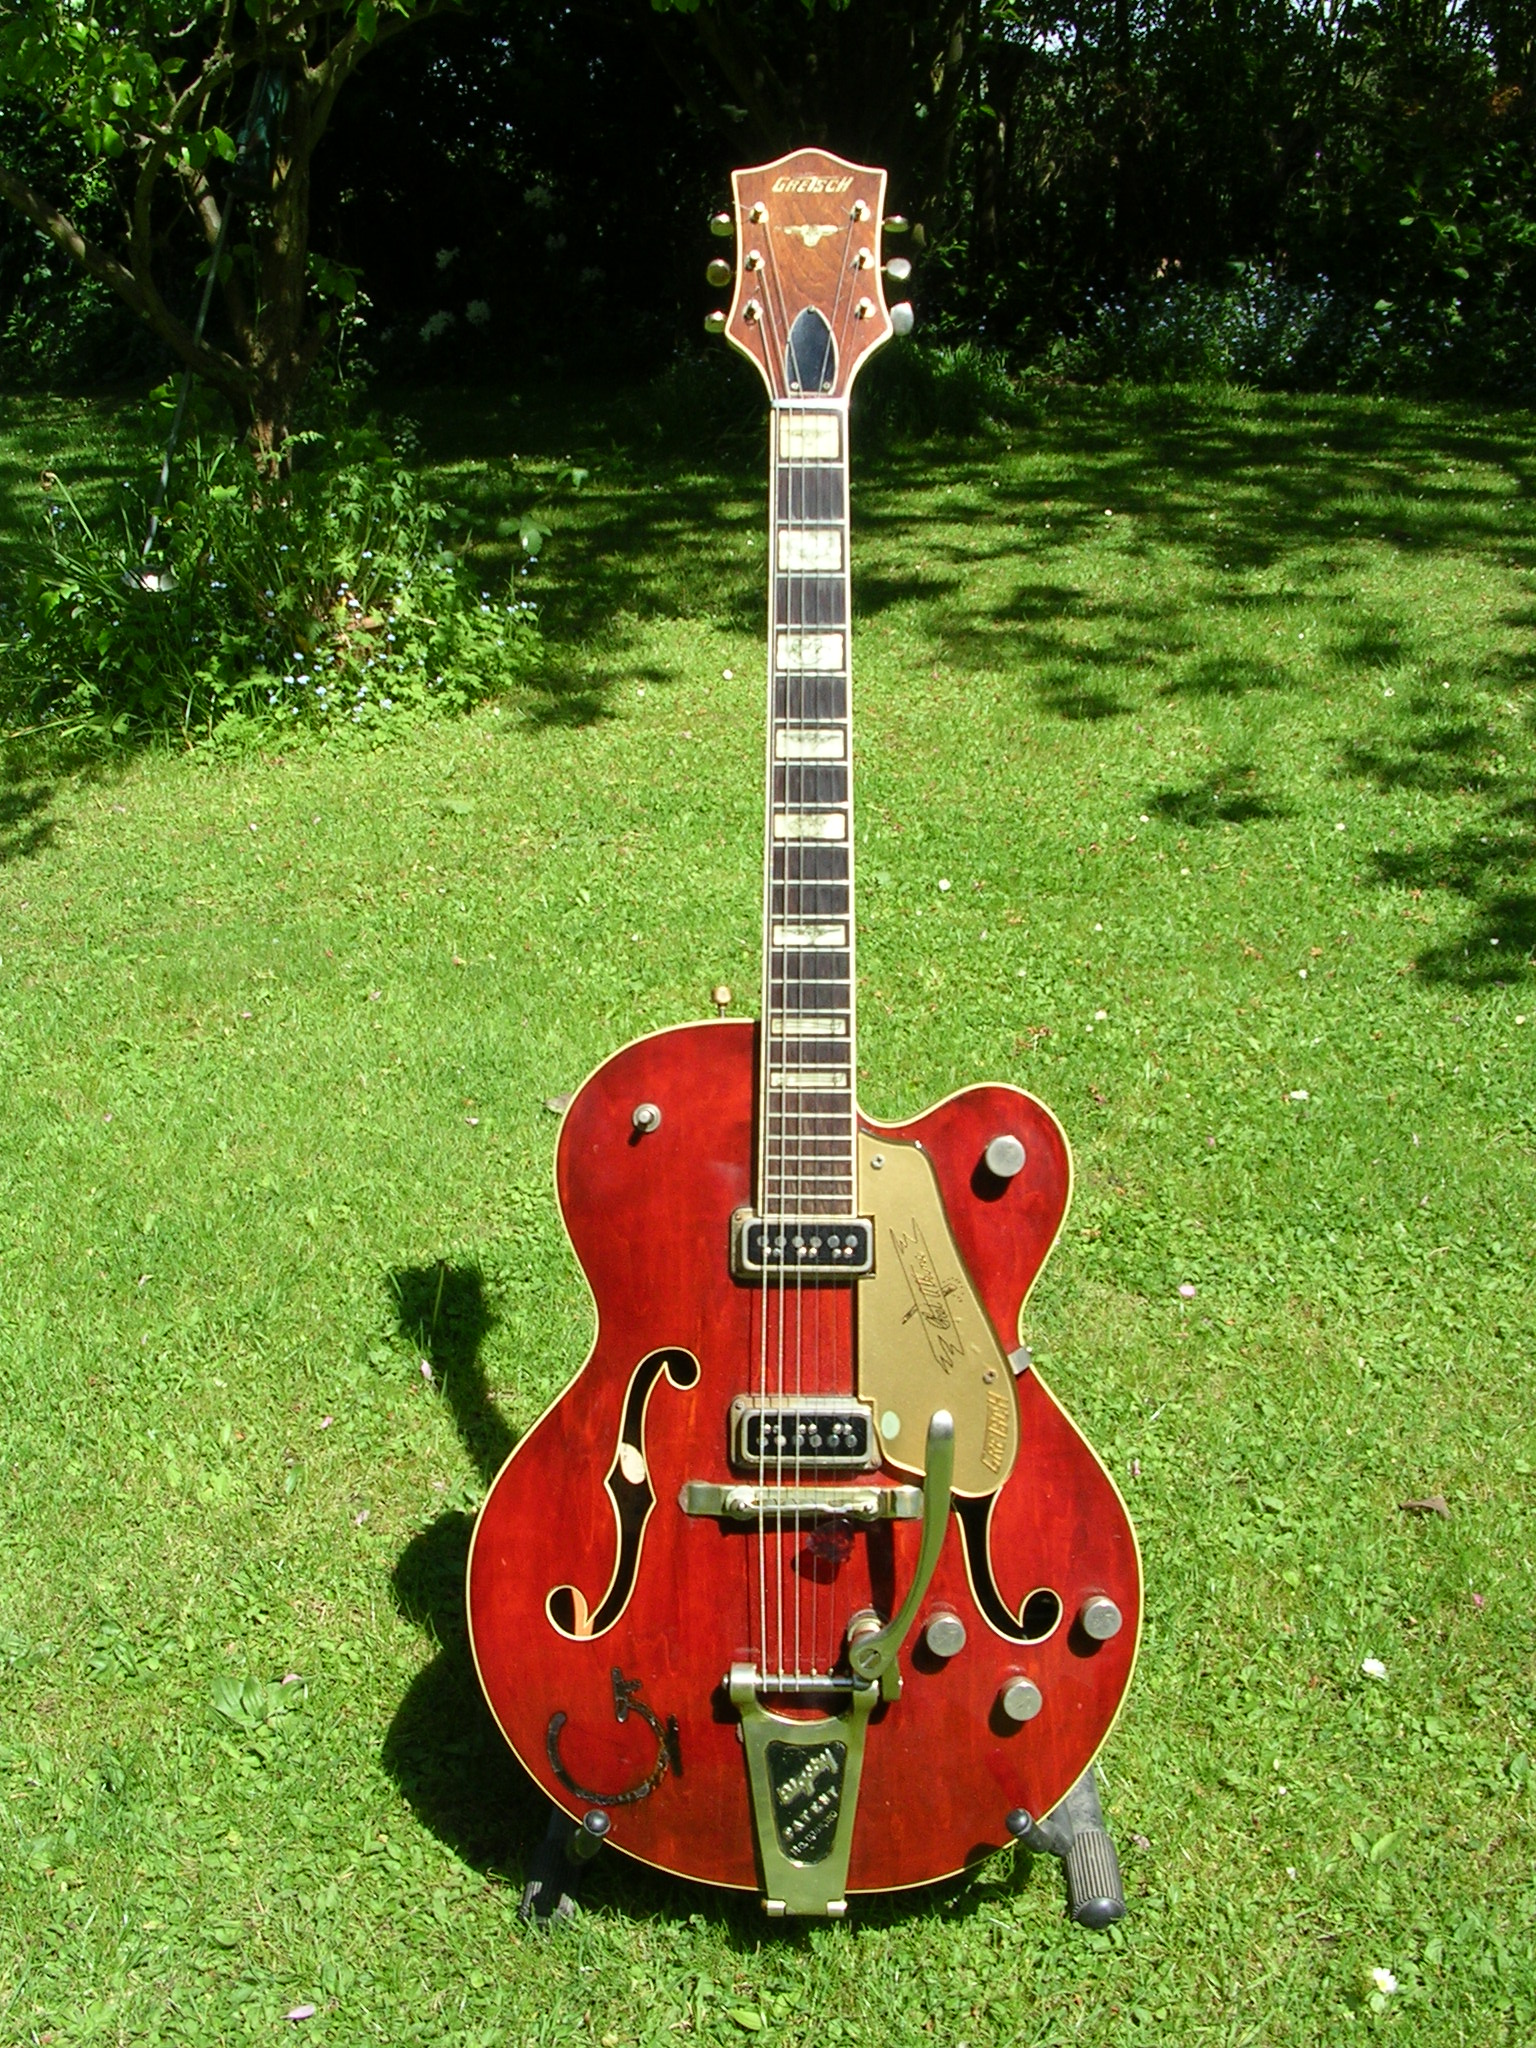 Gretsch - Wikipedia, the free encyclopedia1536